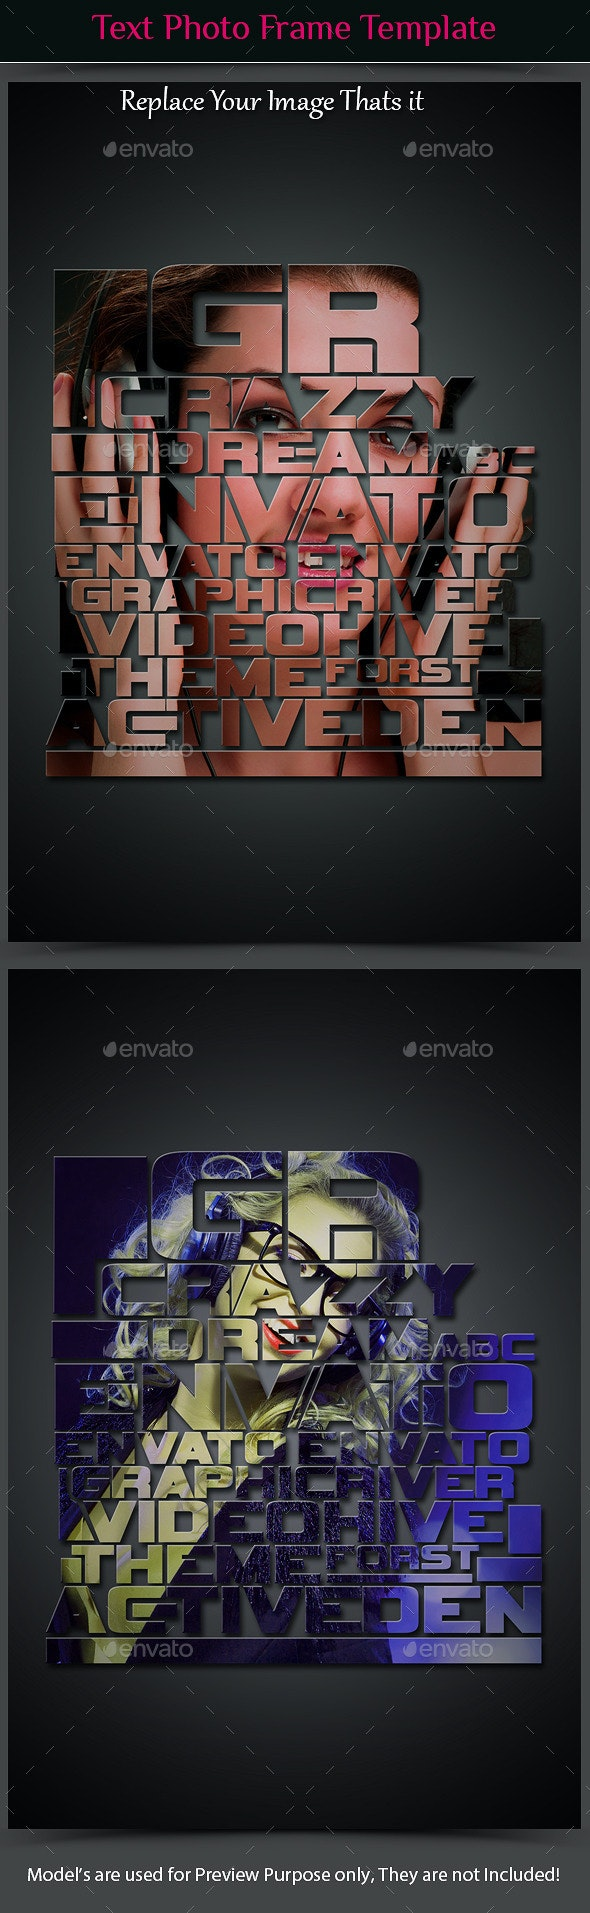 Text Photo Frame Template  - Photo Templates Graphics